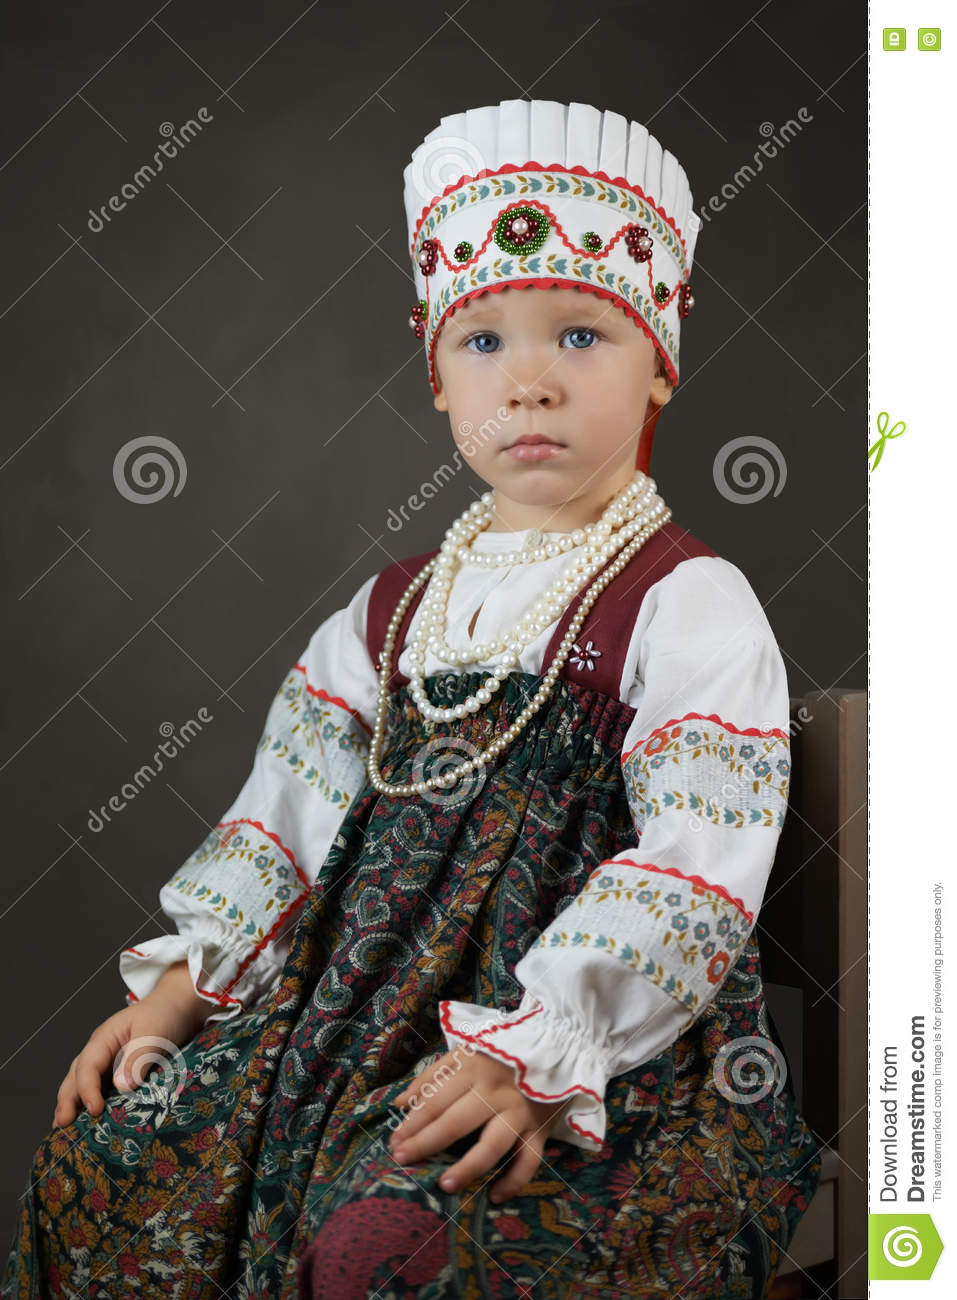 Old style portrait of the little girl in the traditional russian shirt, sarafan and kokoshnik